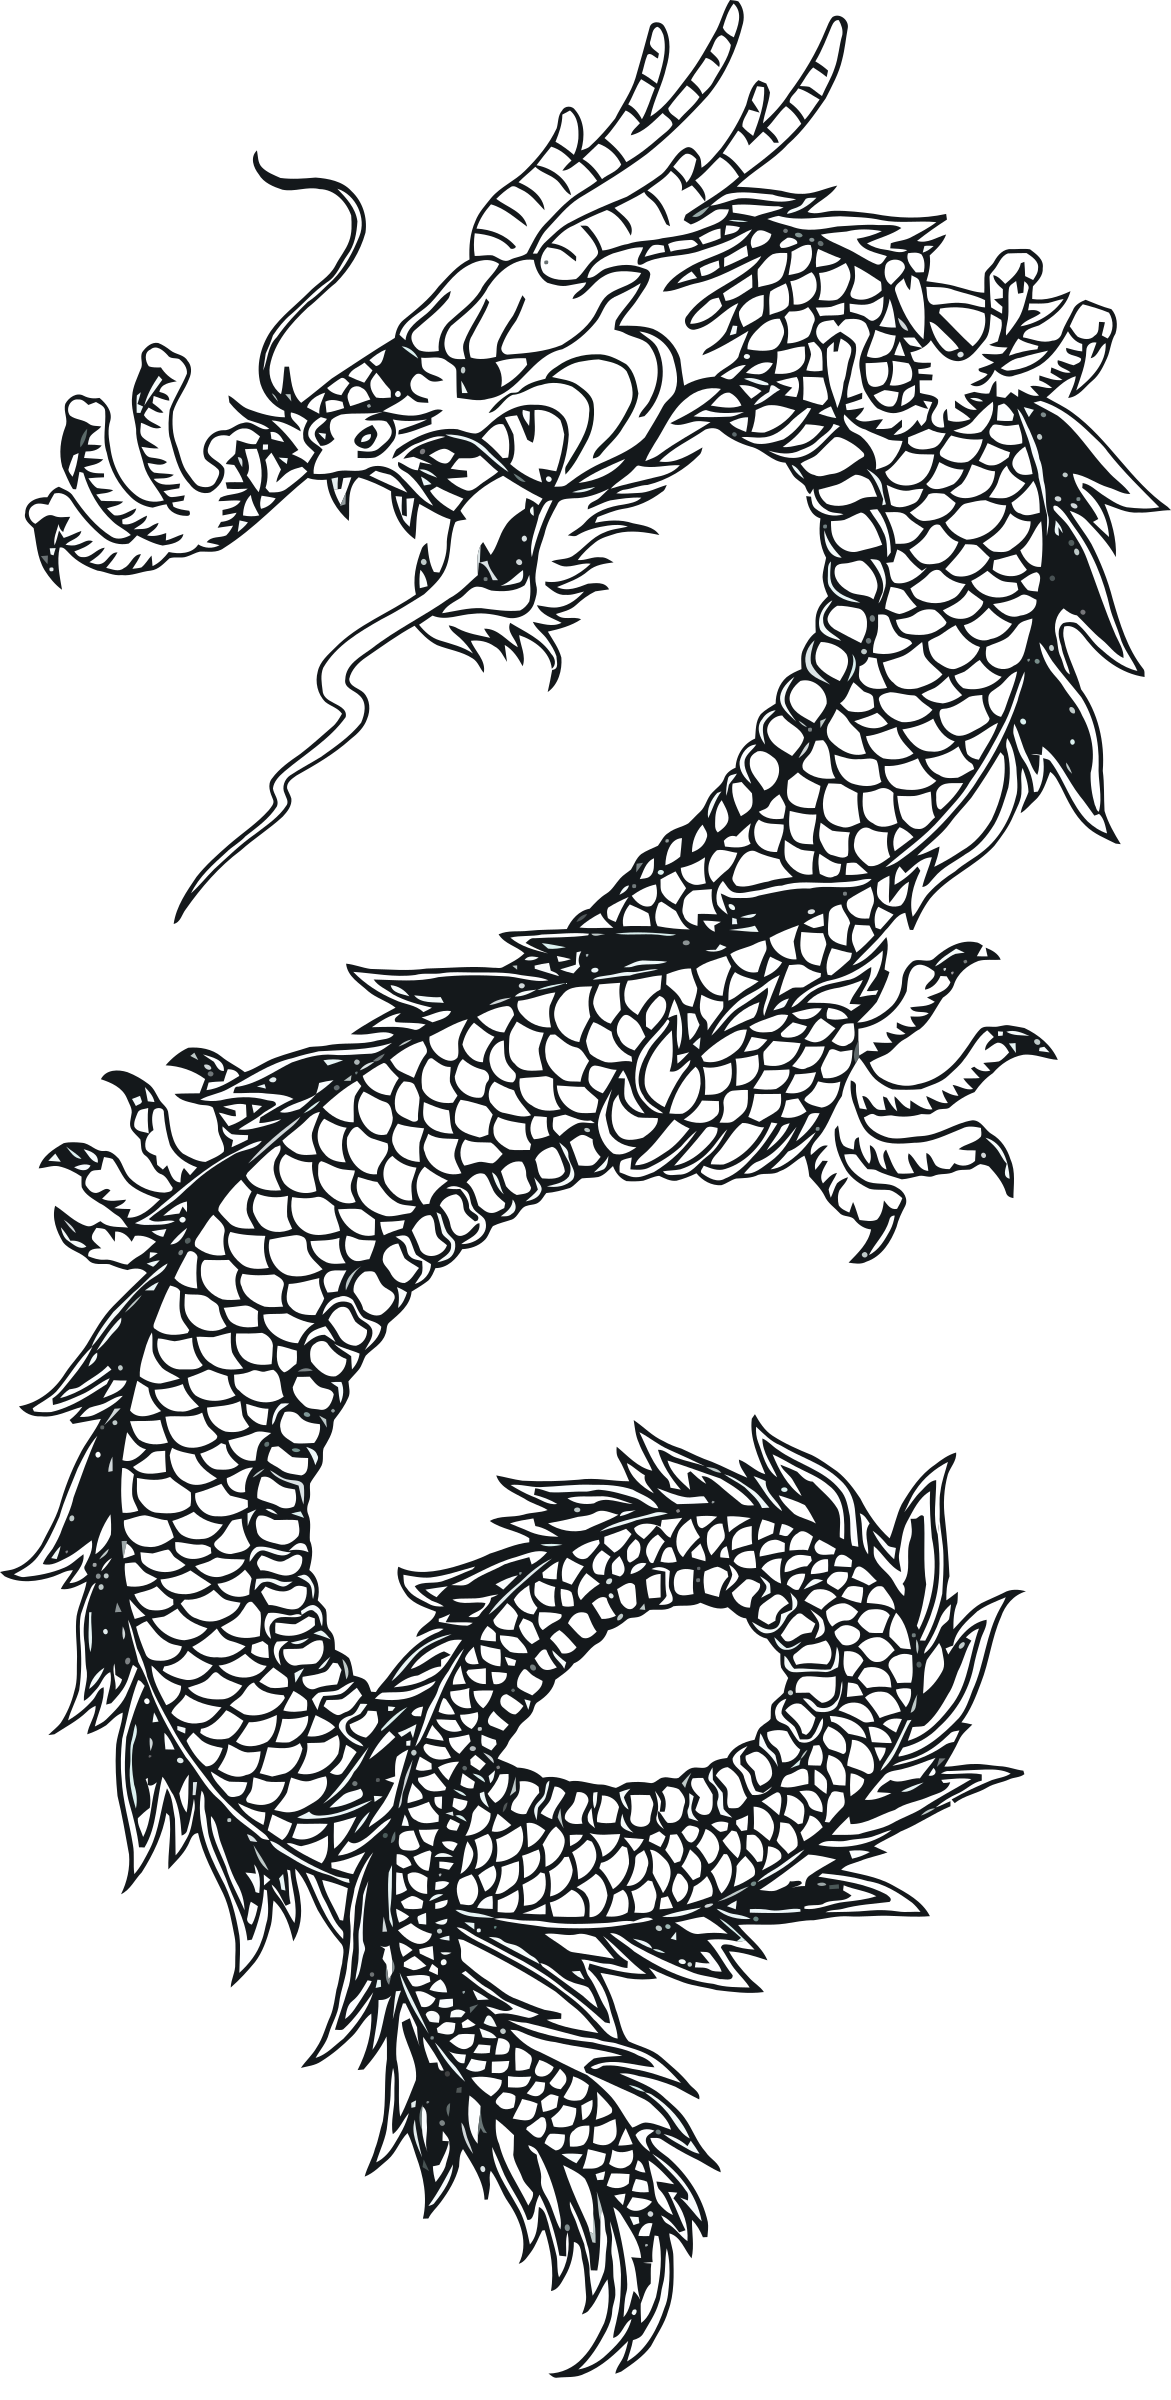 Dragon Vector Art 1 w/o text by antti.leppa